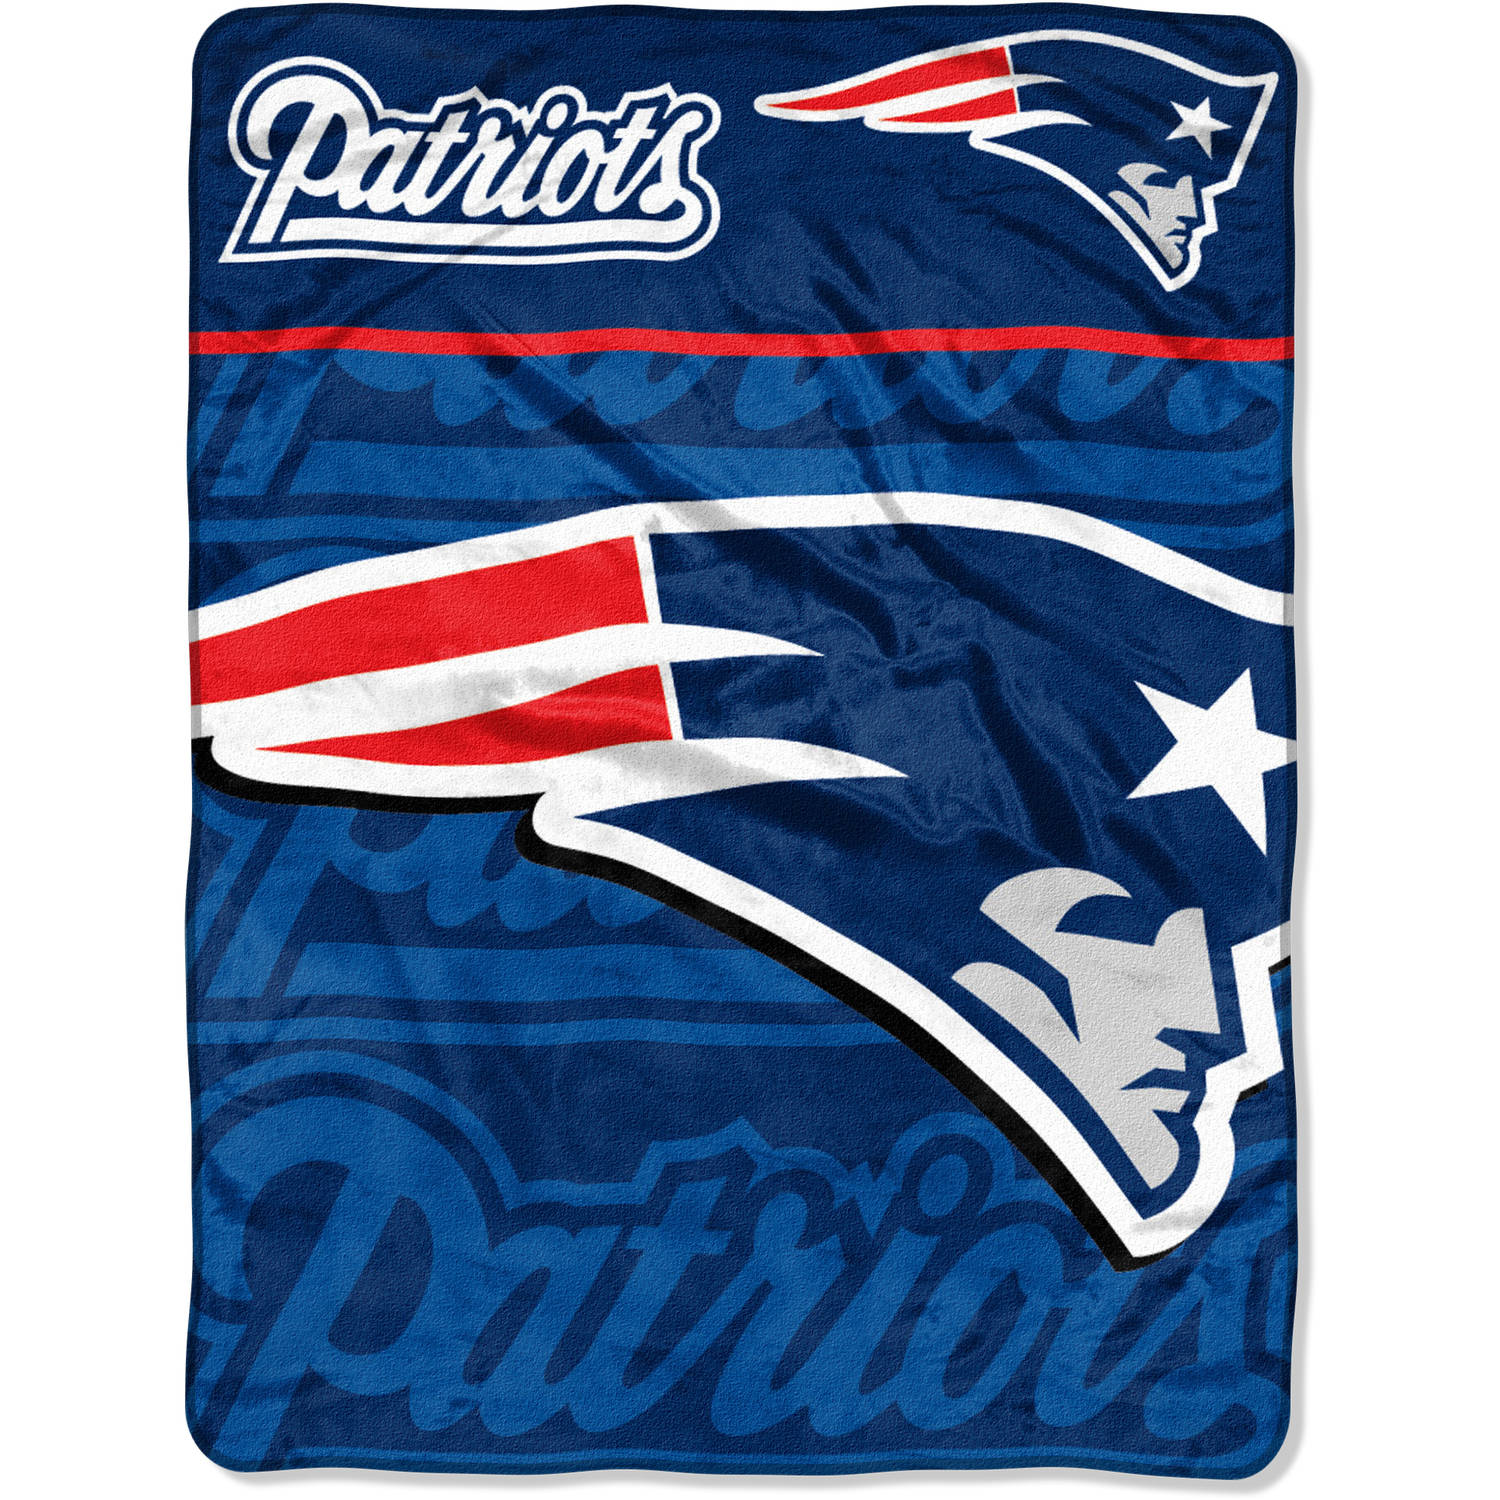 "NFL New England Patriots 46"" x 60"" Micro Raschel Throw"